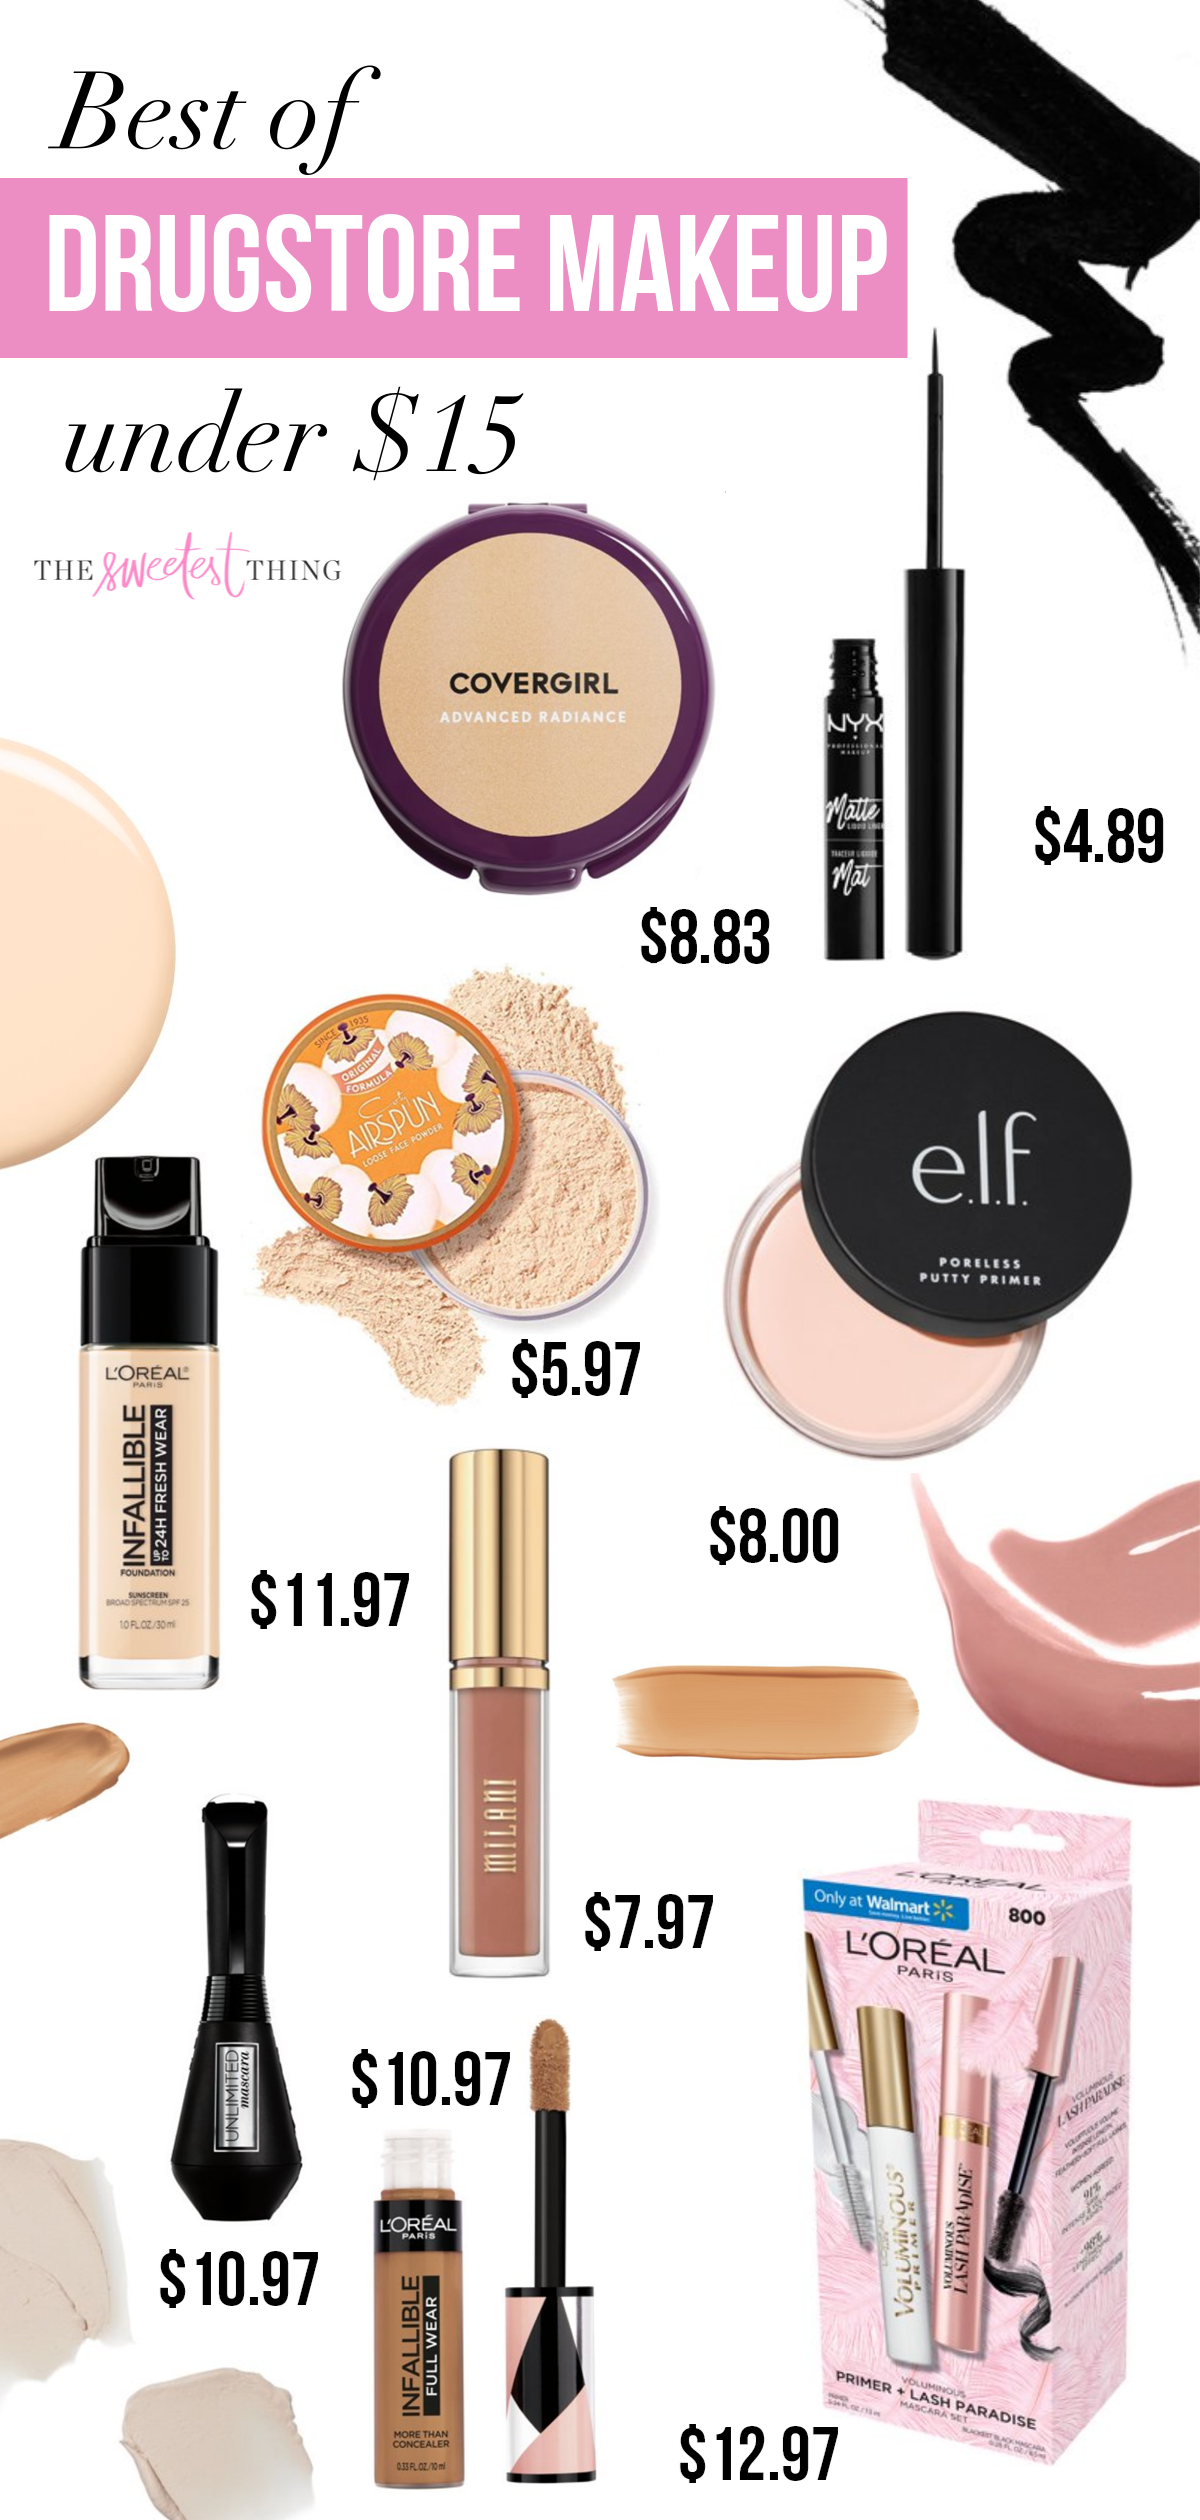 Best Drugstore Makeup Us Beauty The Sweetest Thing In 2020 Drugstore Makeup Best Drugstore Makeup Beauty Products Drugstore